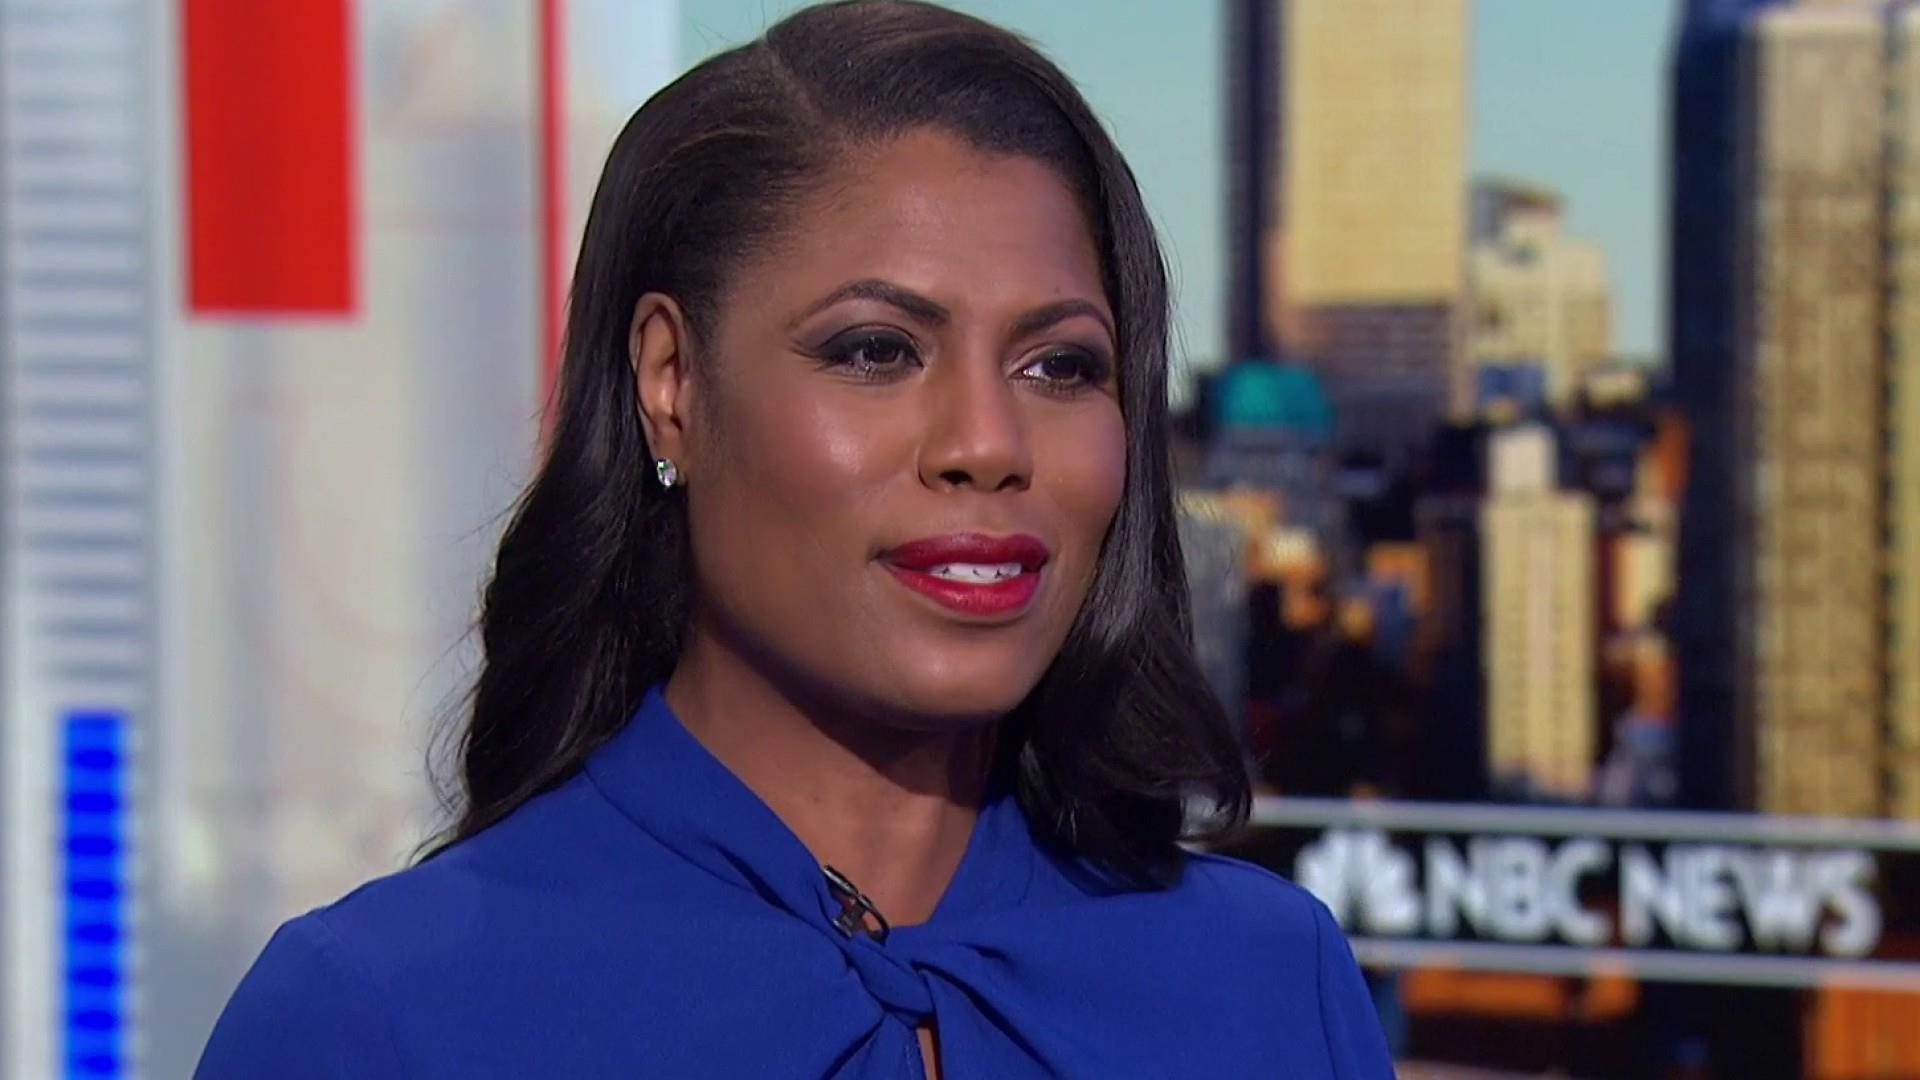 'The numbers don't lie': Omarosa on gender pay lawsuit against Trump campaign